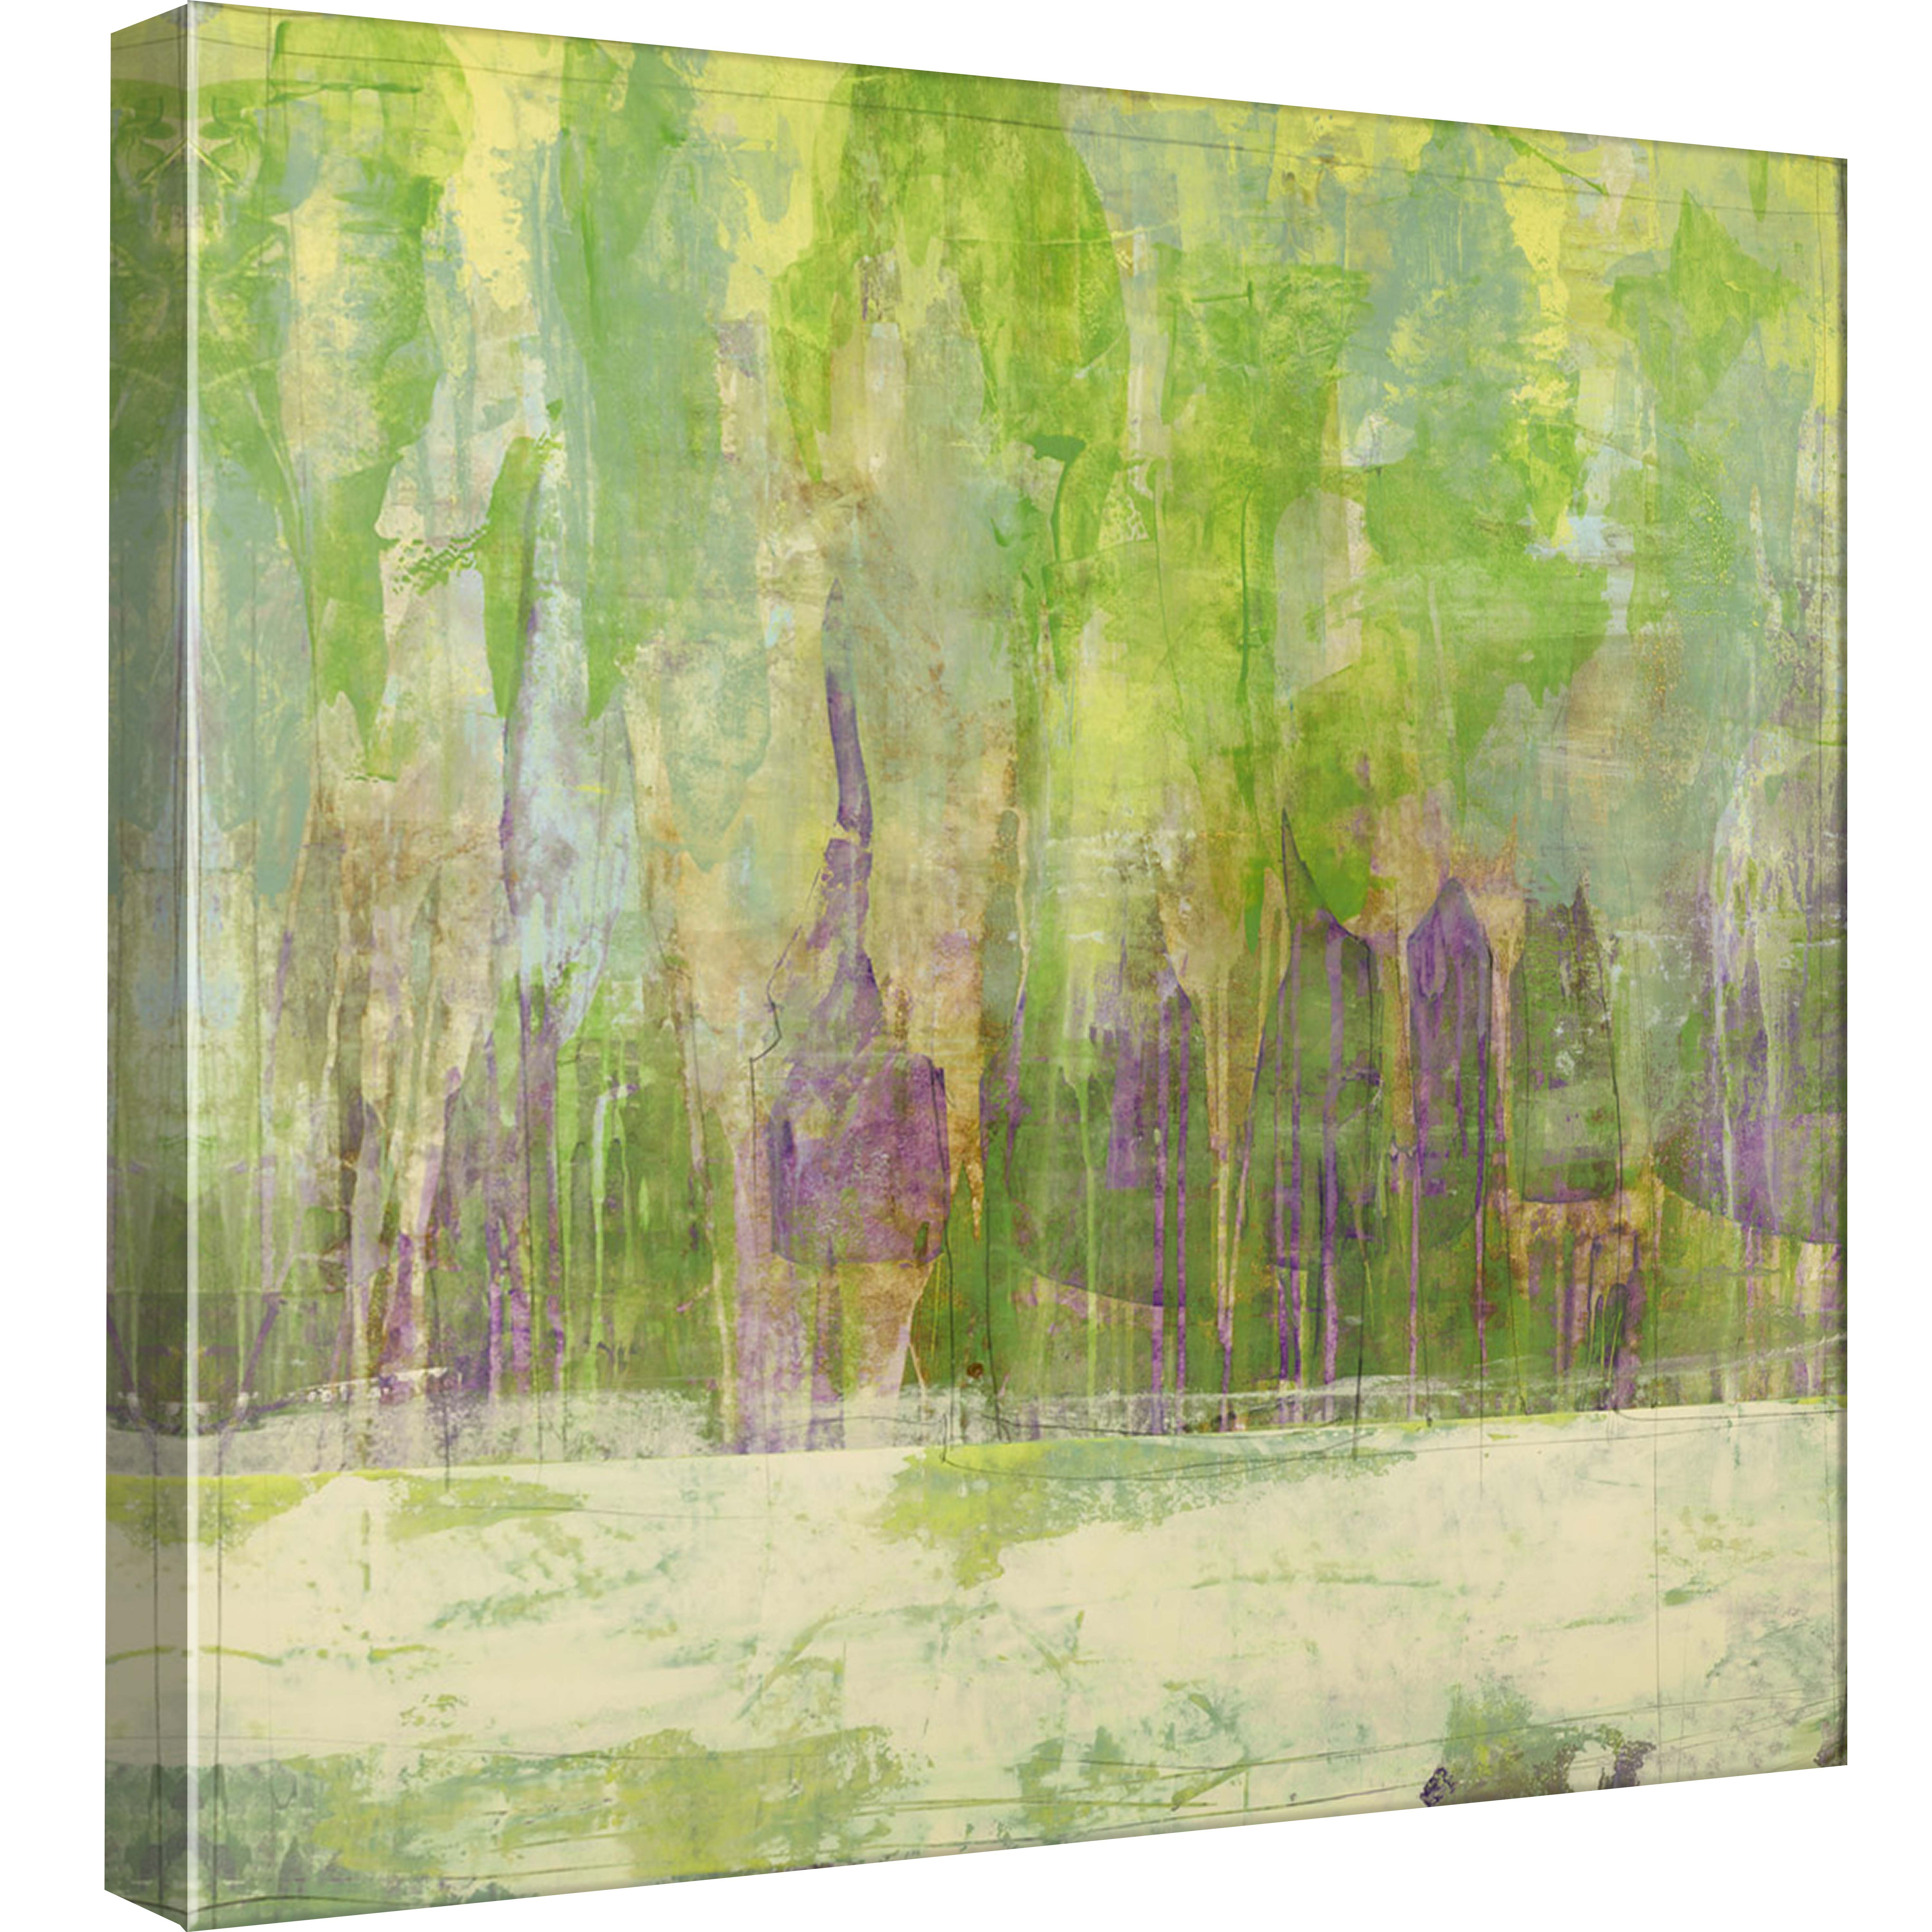 PTM Images,Stencil Forest 2, 20x20, Decorative Canvas Wall Art